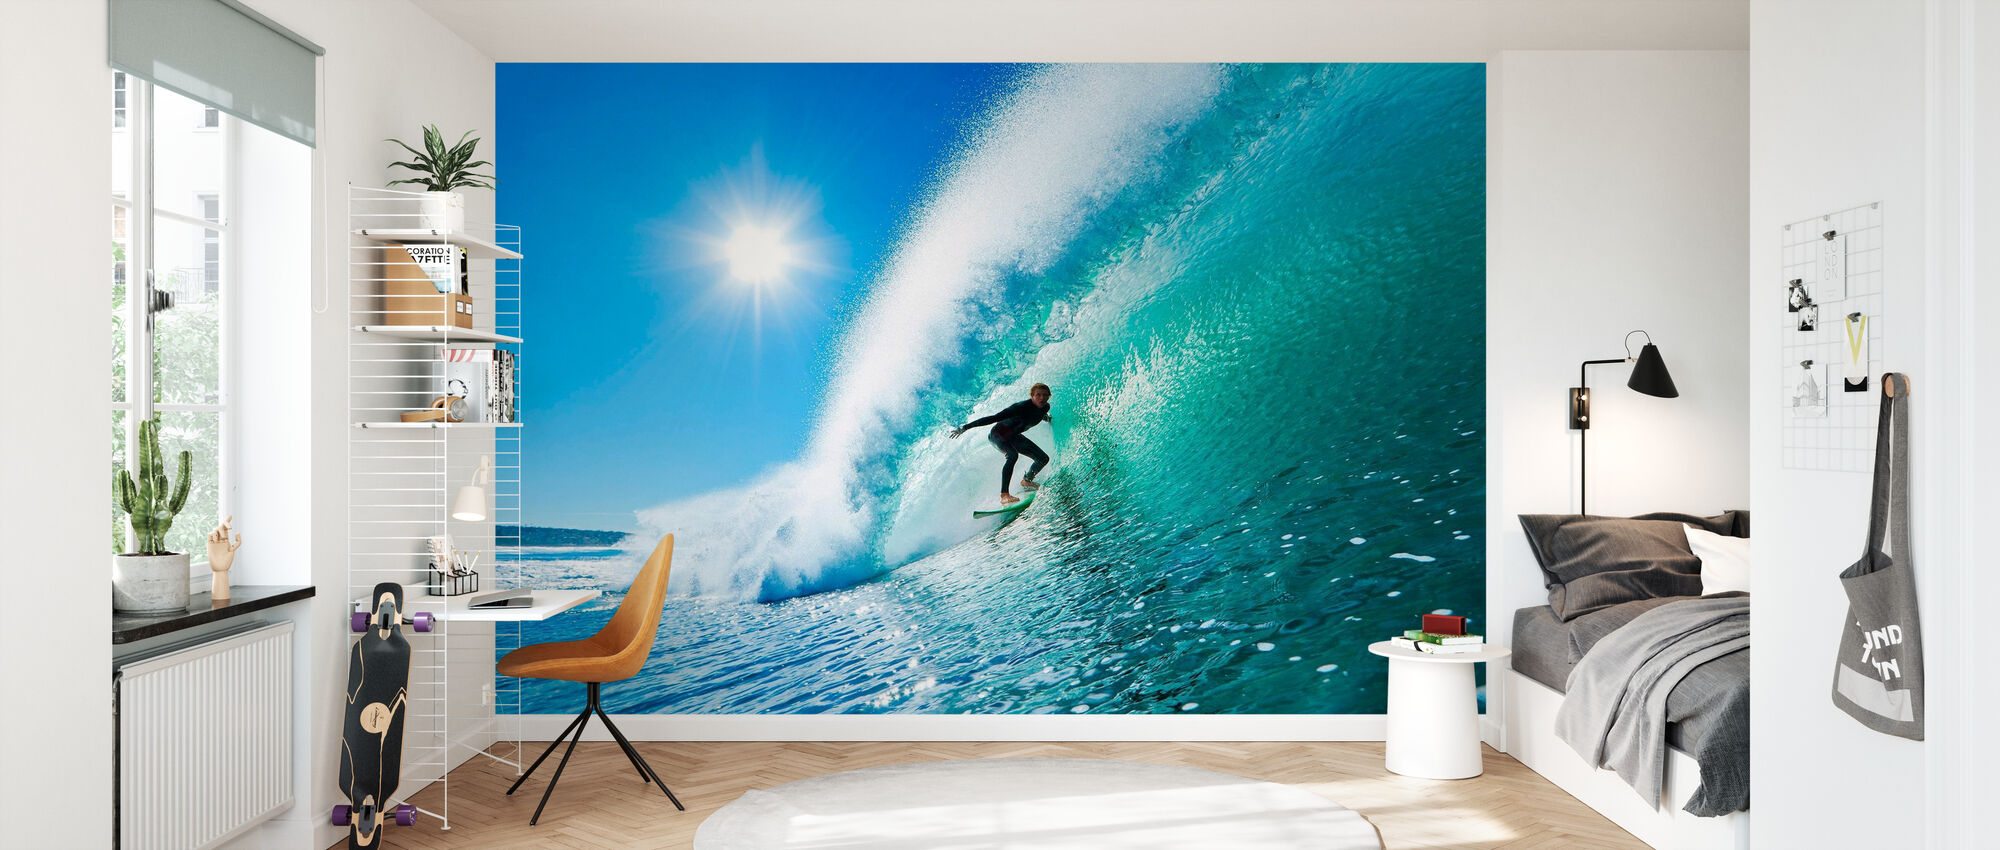 Surfing - Wallpaper - Kids Room